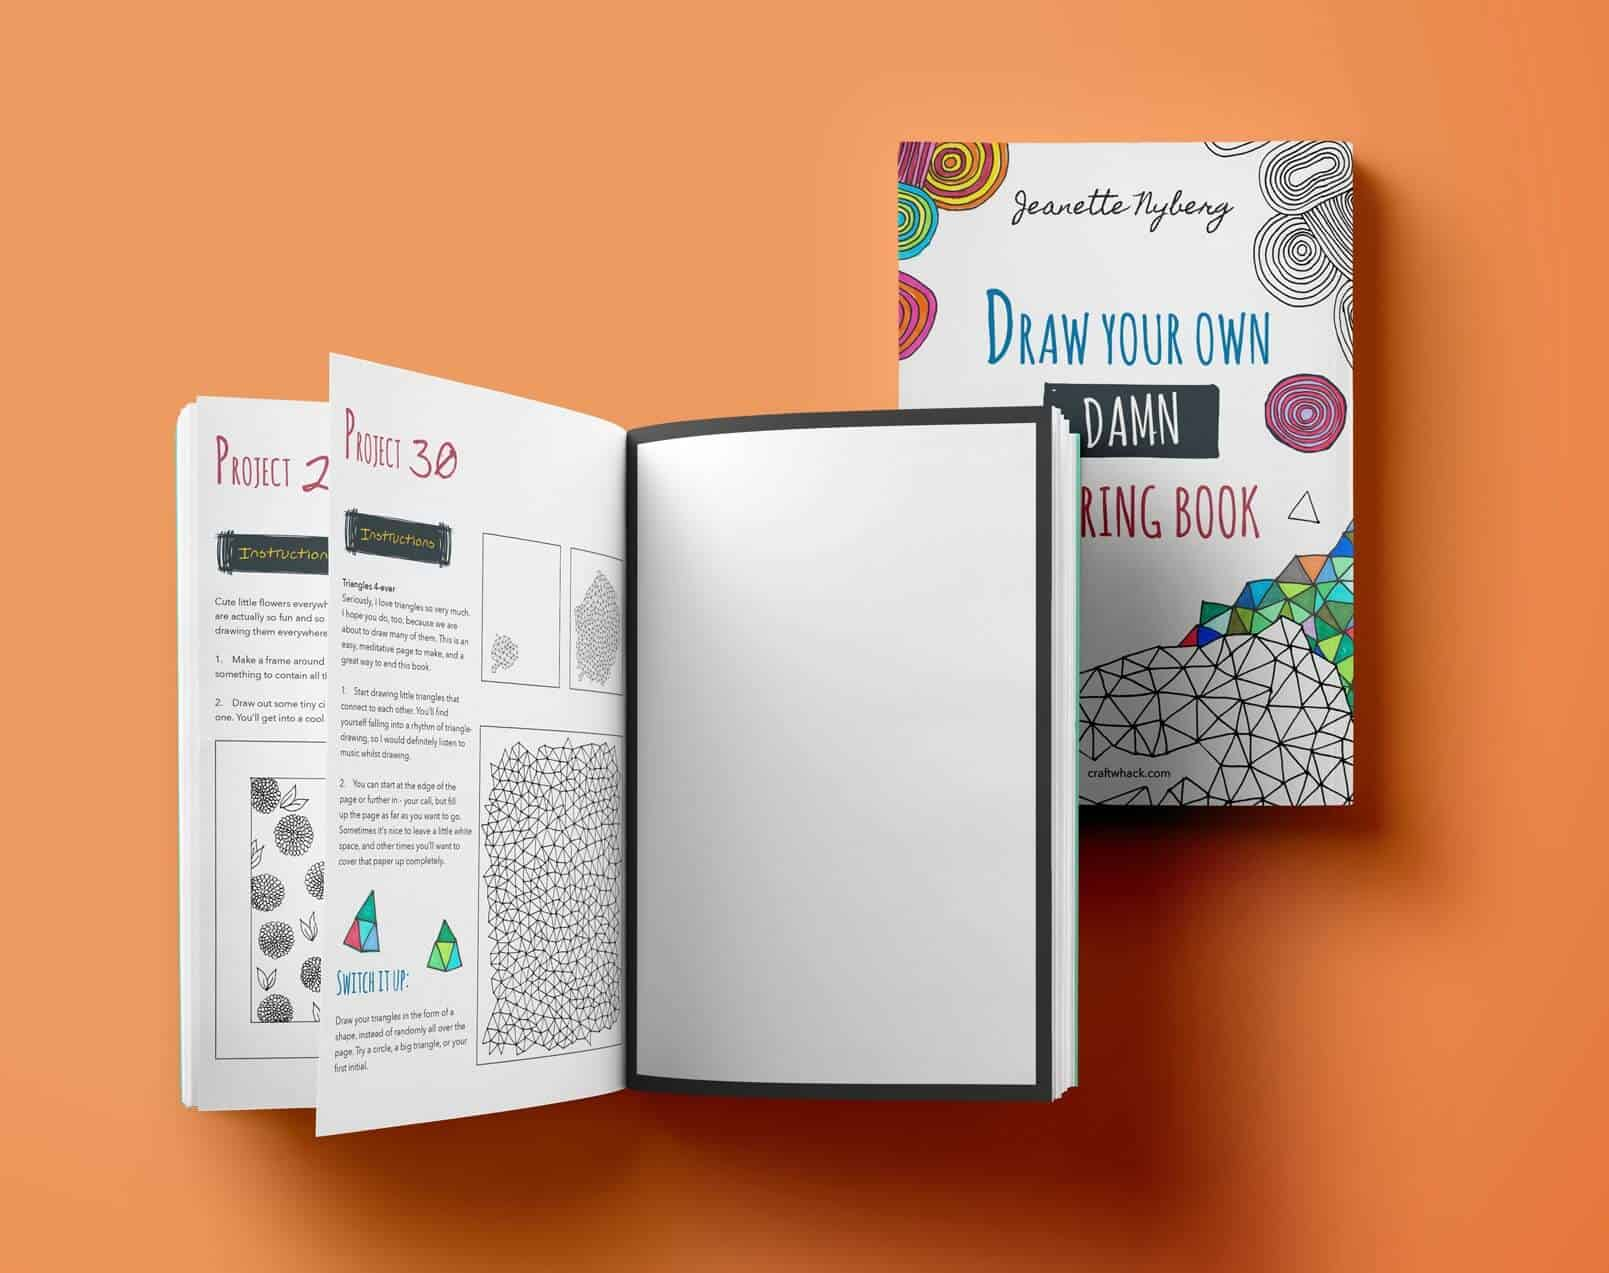 Draw Your Own Damn Coloring Book by Jeanette Nyberg